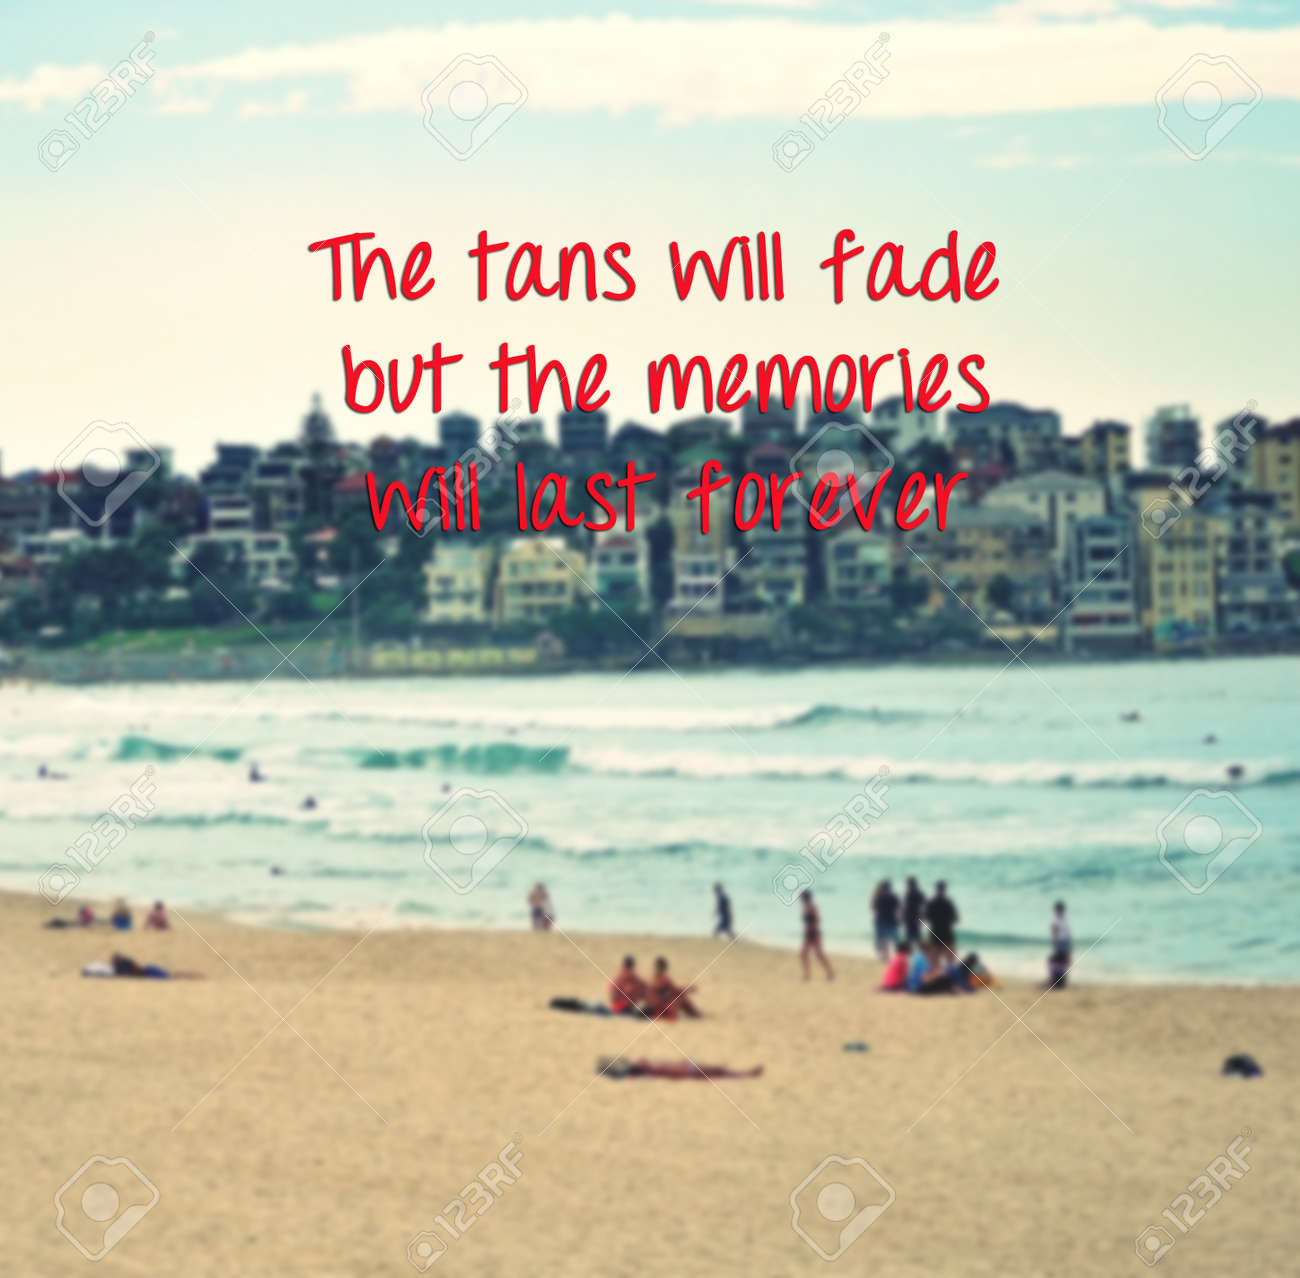 Inspirational Summer Quotes With Phrase The Tans Will Fade But